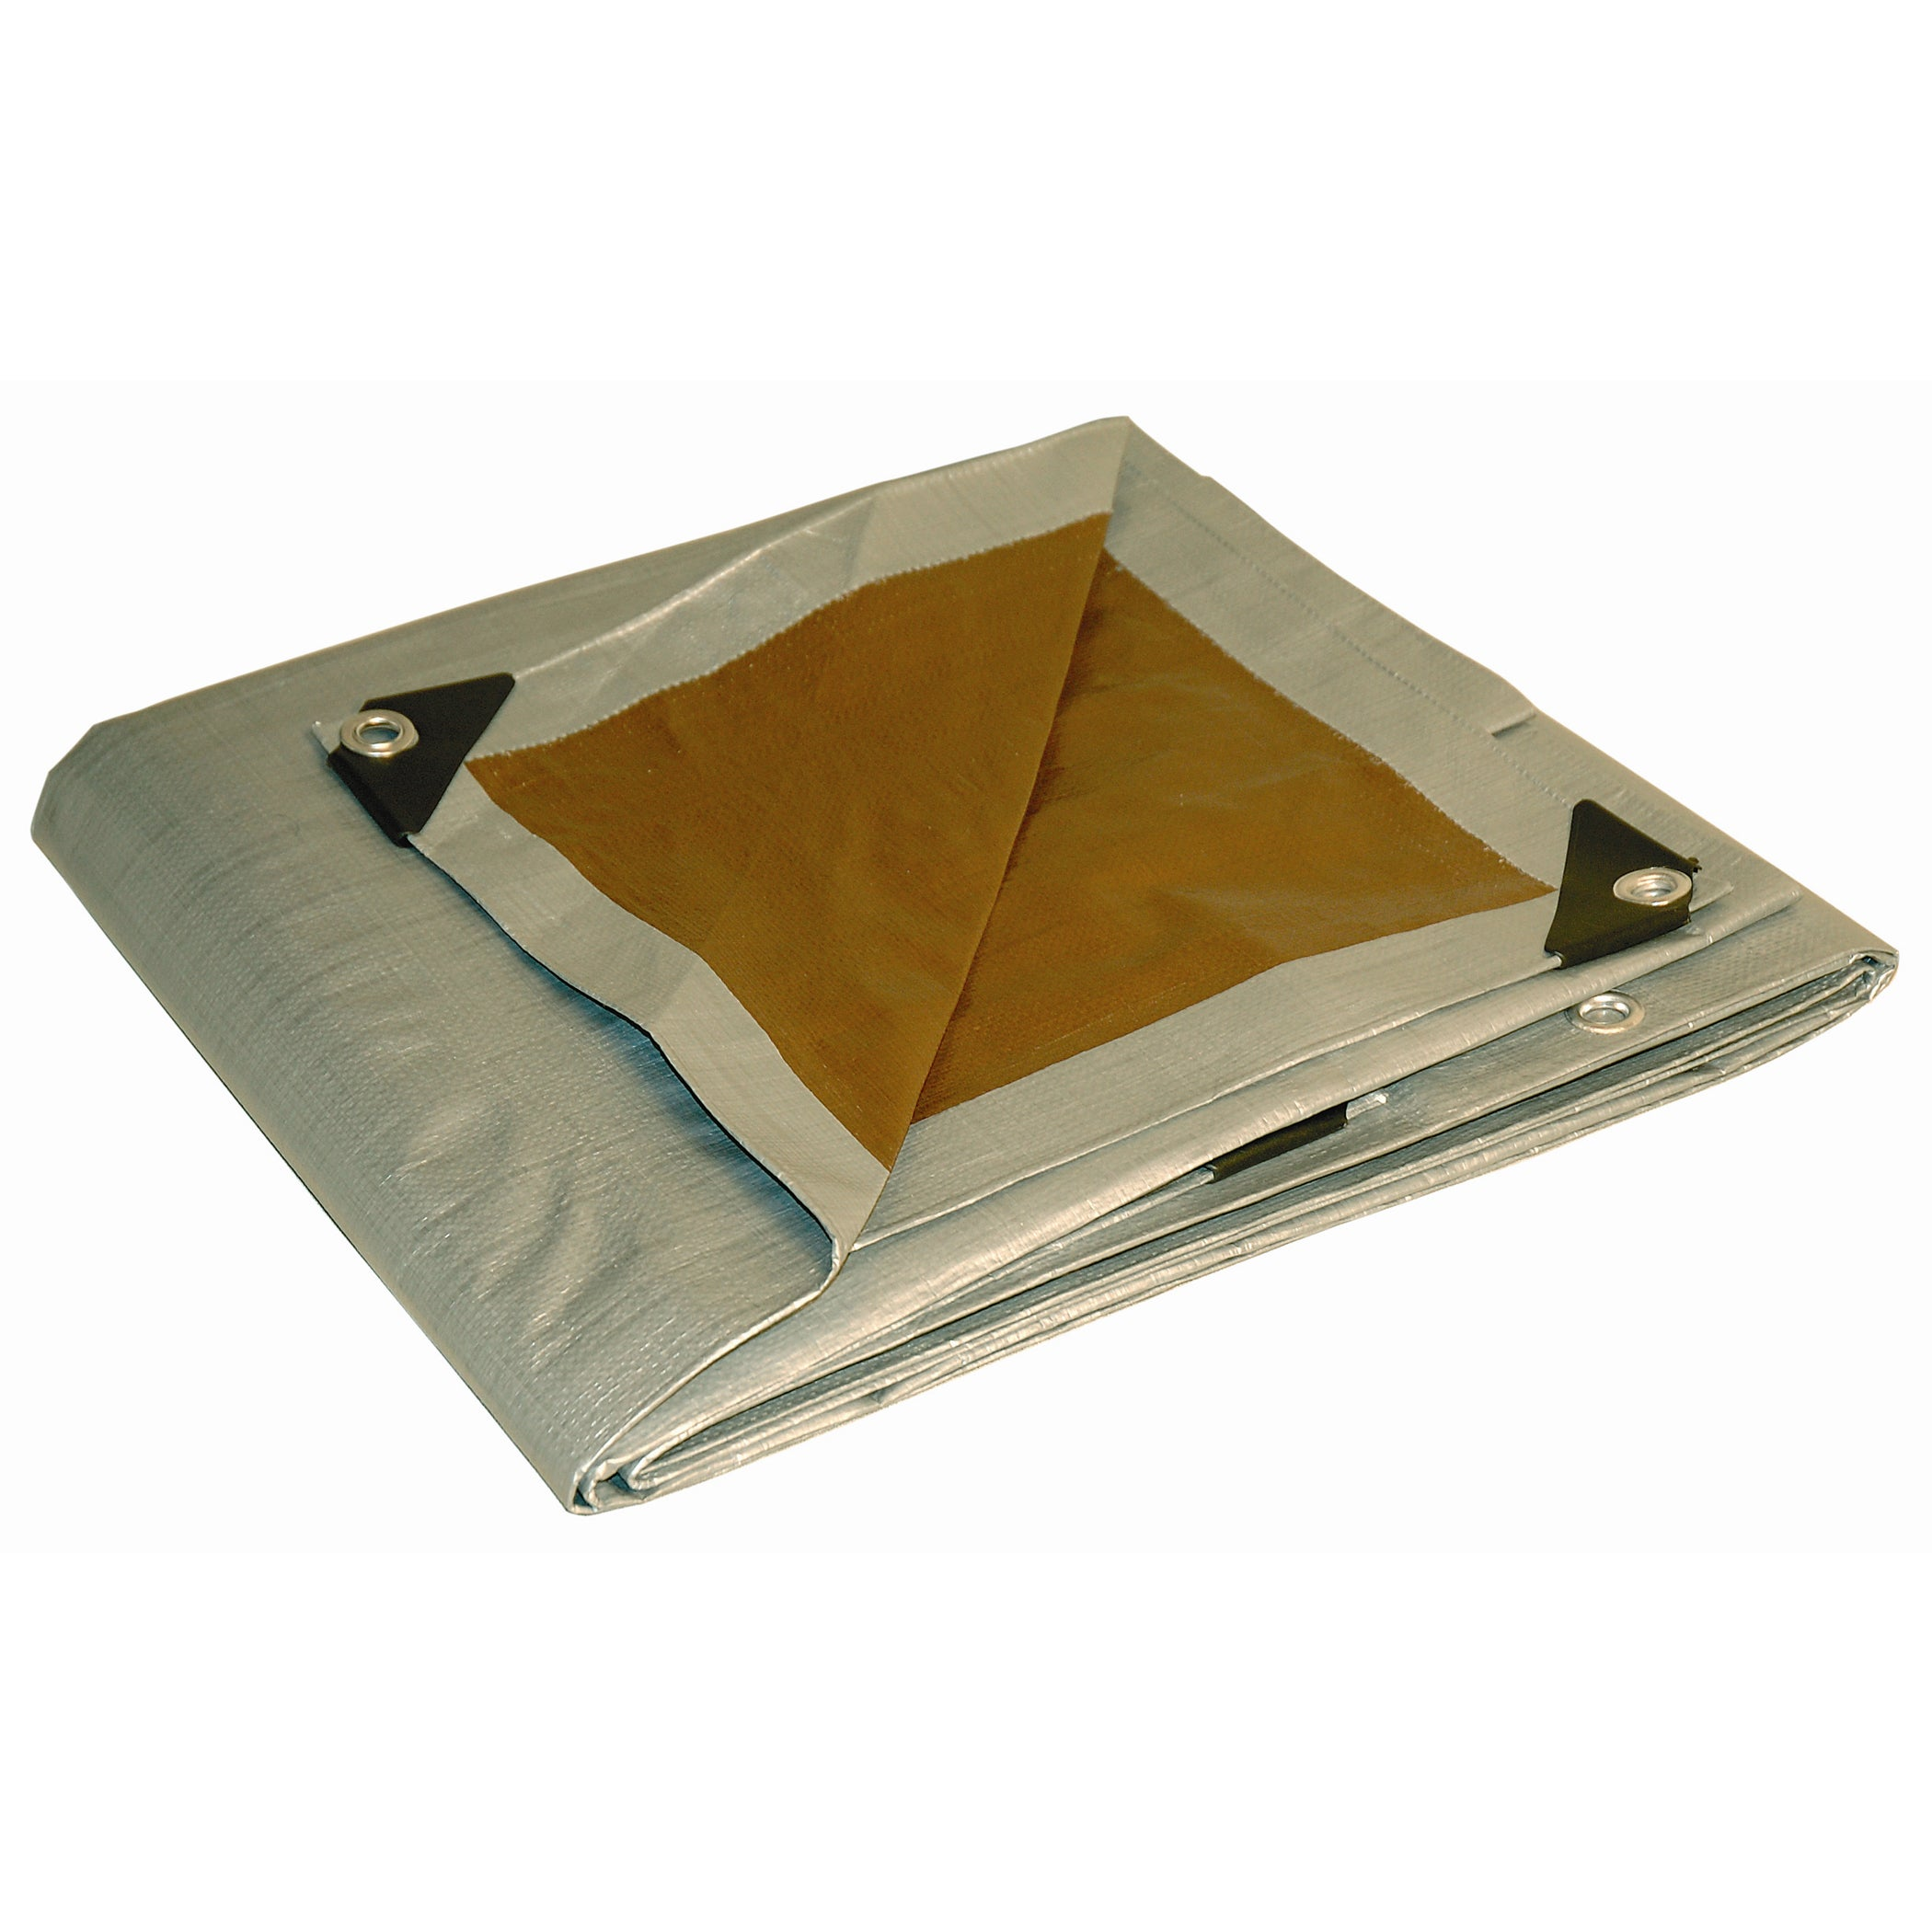 Foremost Dry Top Tarp Silver Brown 21620 16' X 20' Revers...